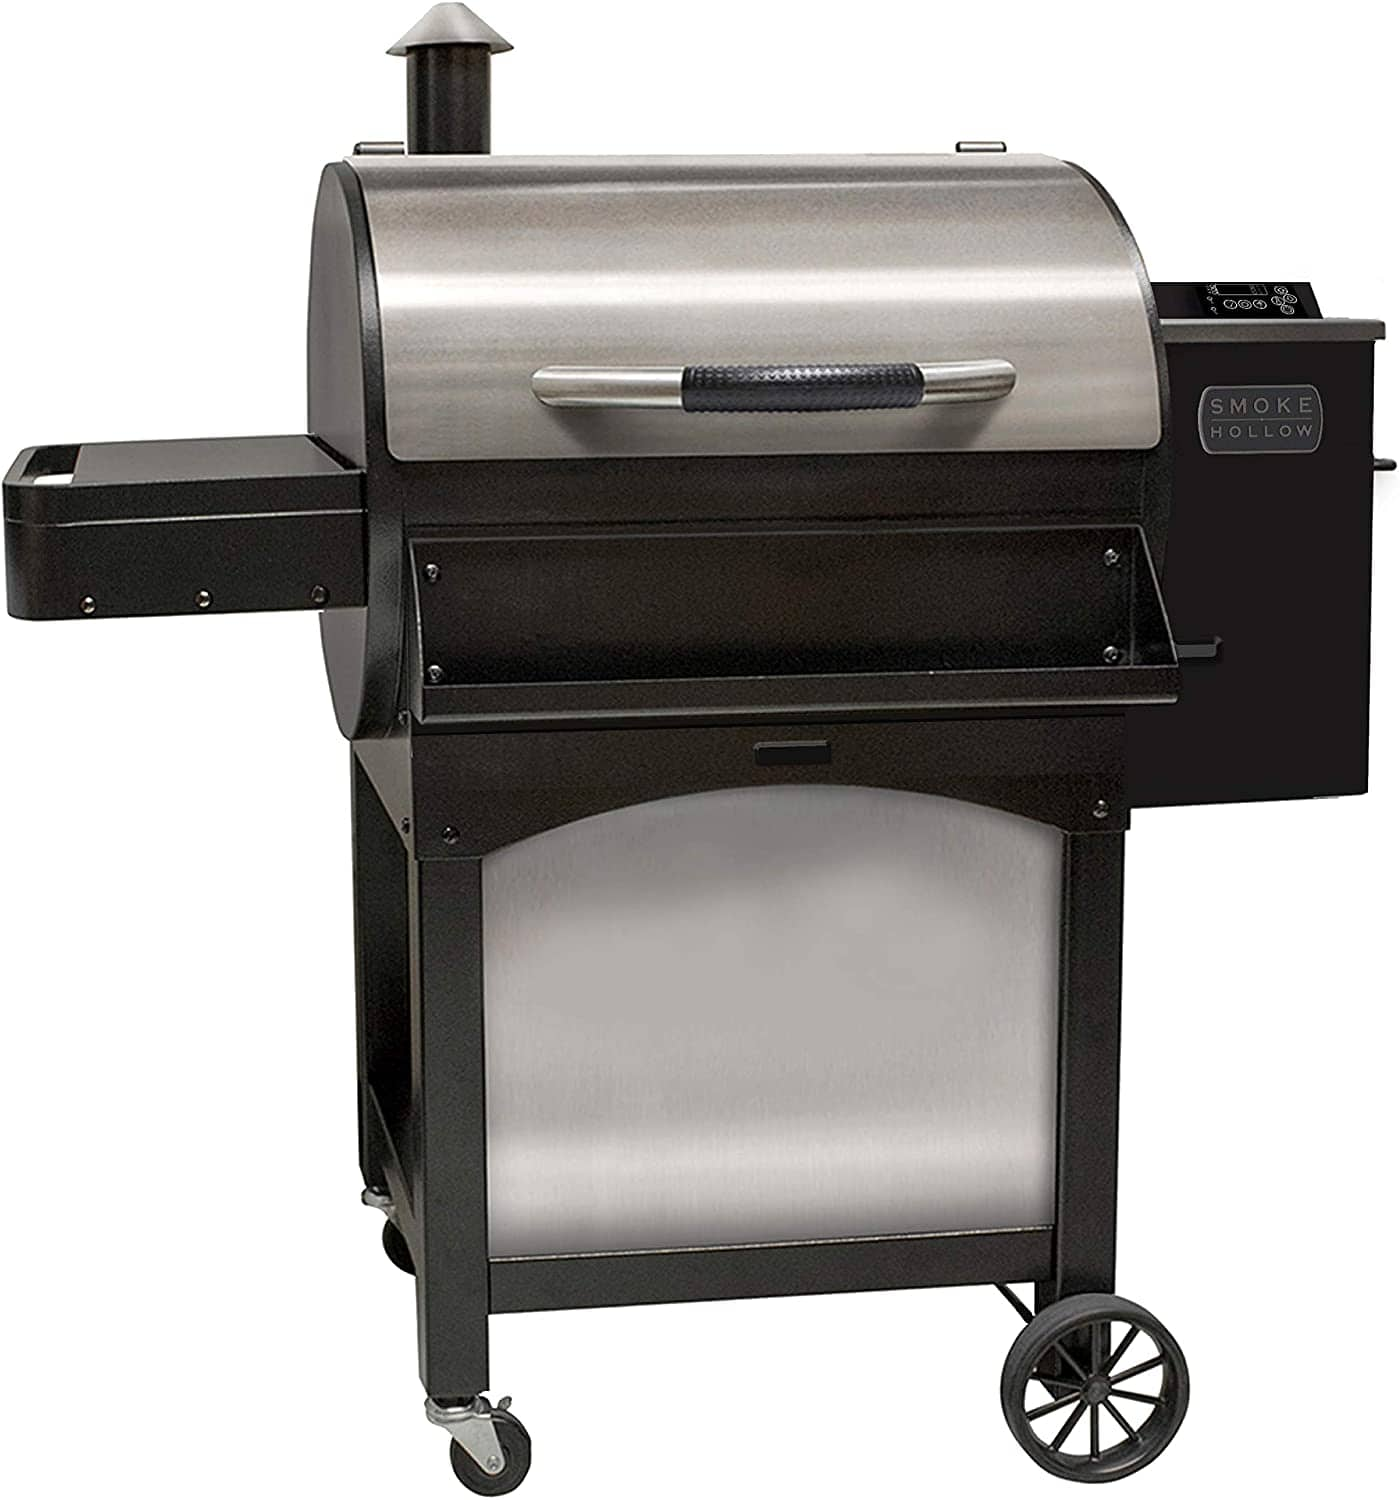 "Masterbuilt Smoke Hollow 30"" Pellet Grill $379.99 + Free S/H for Prime Members"